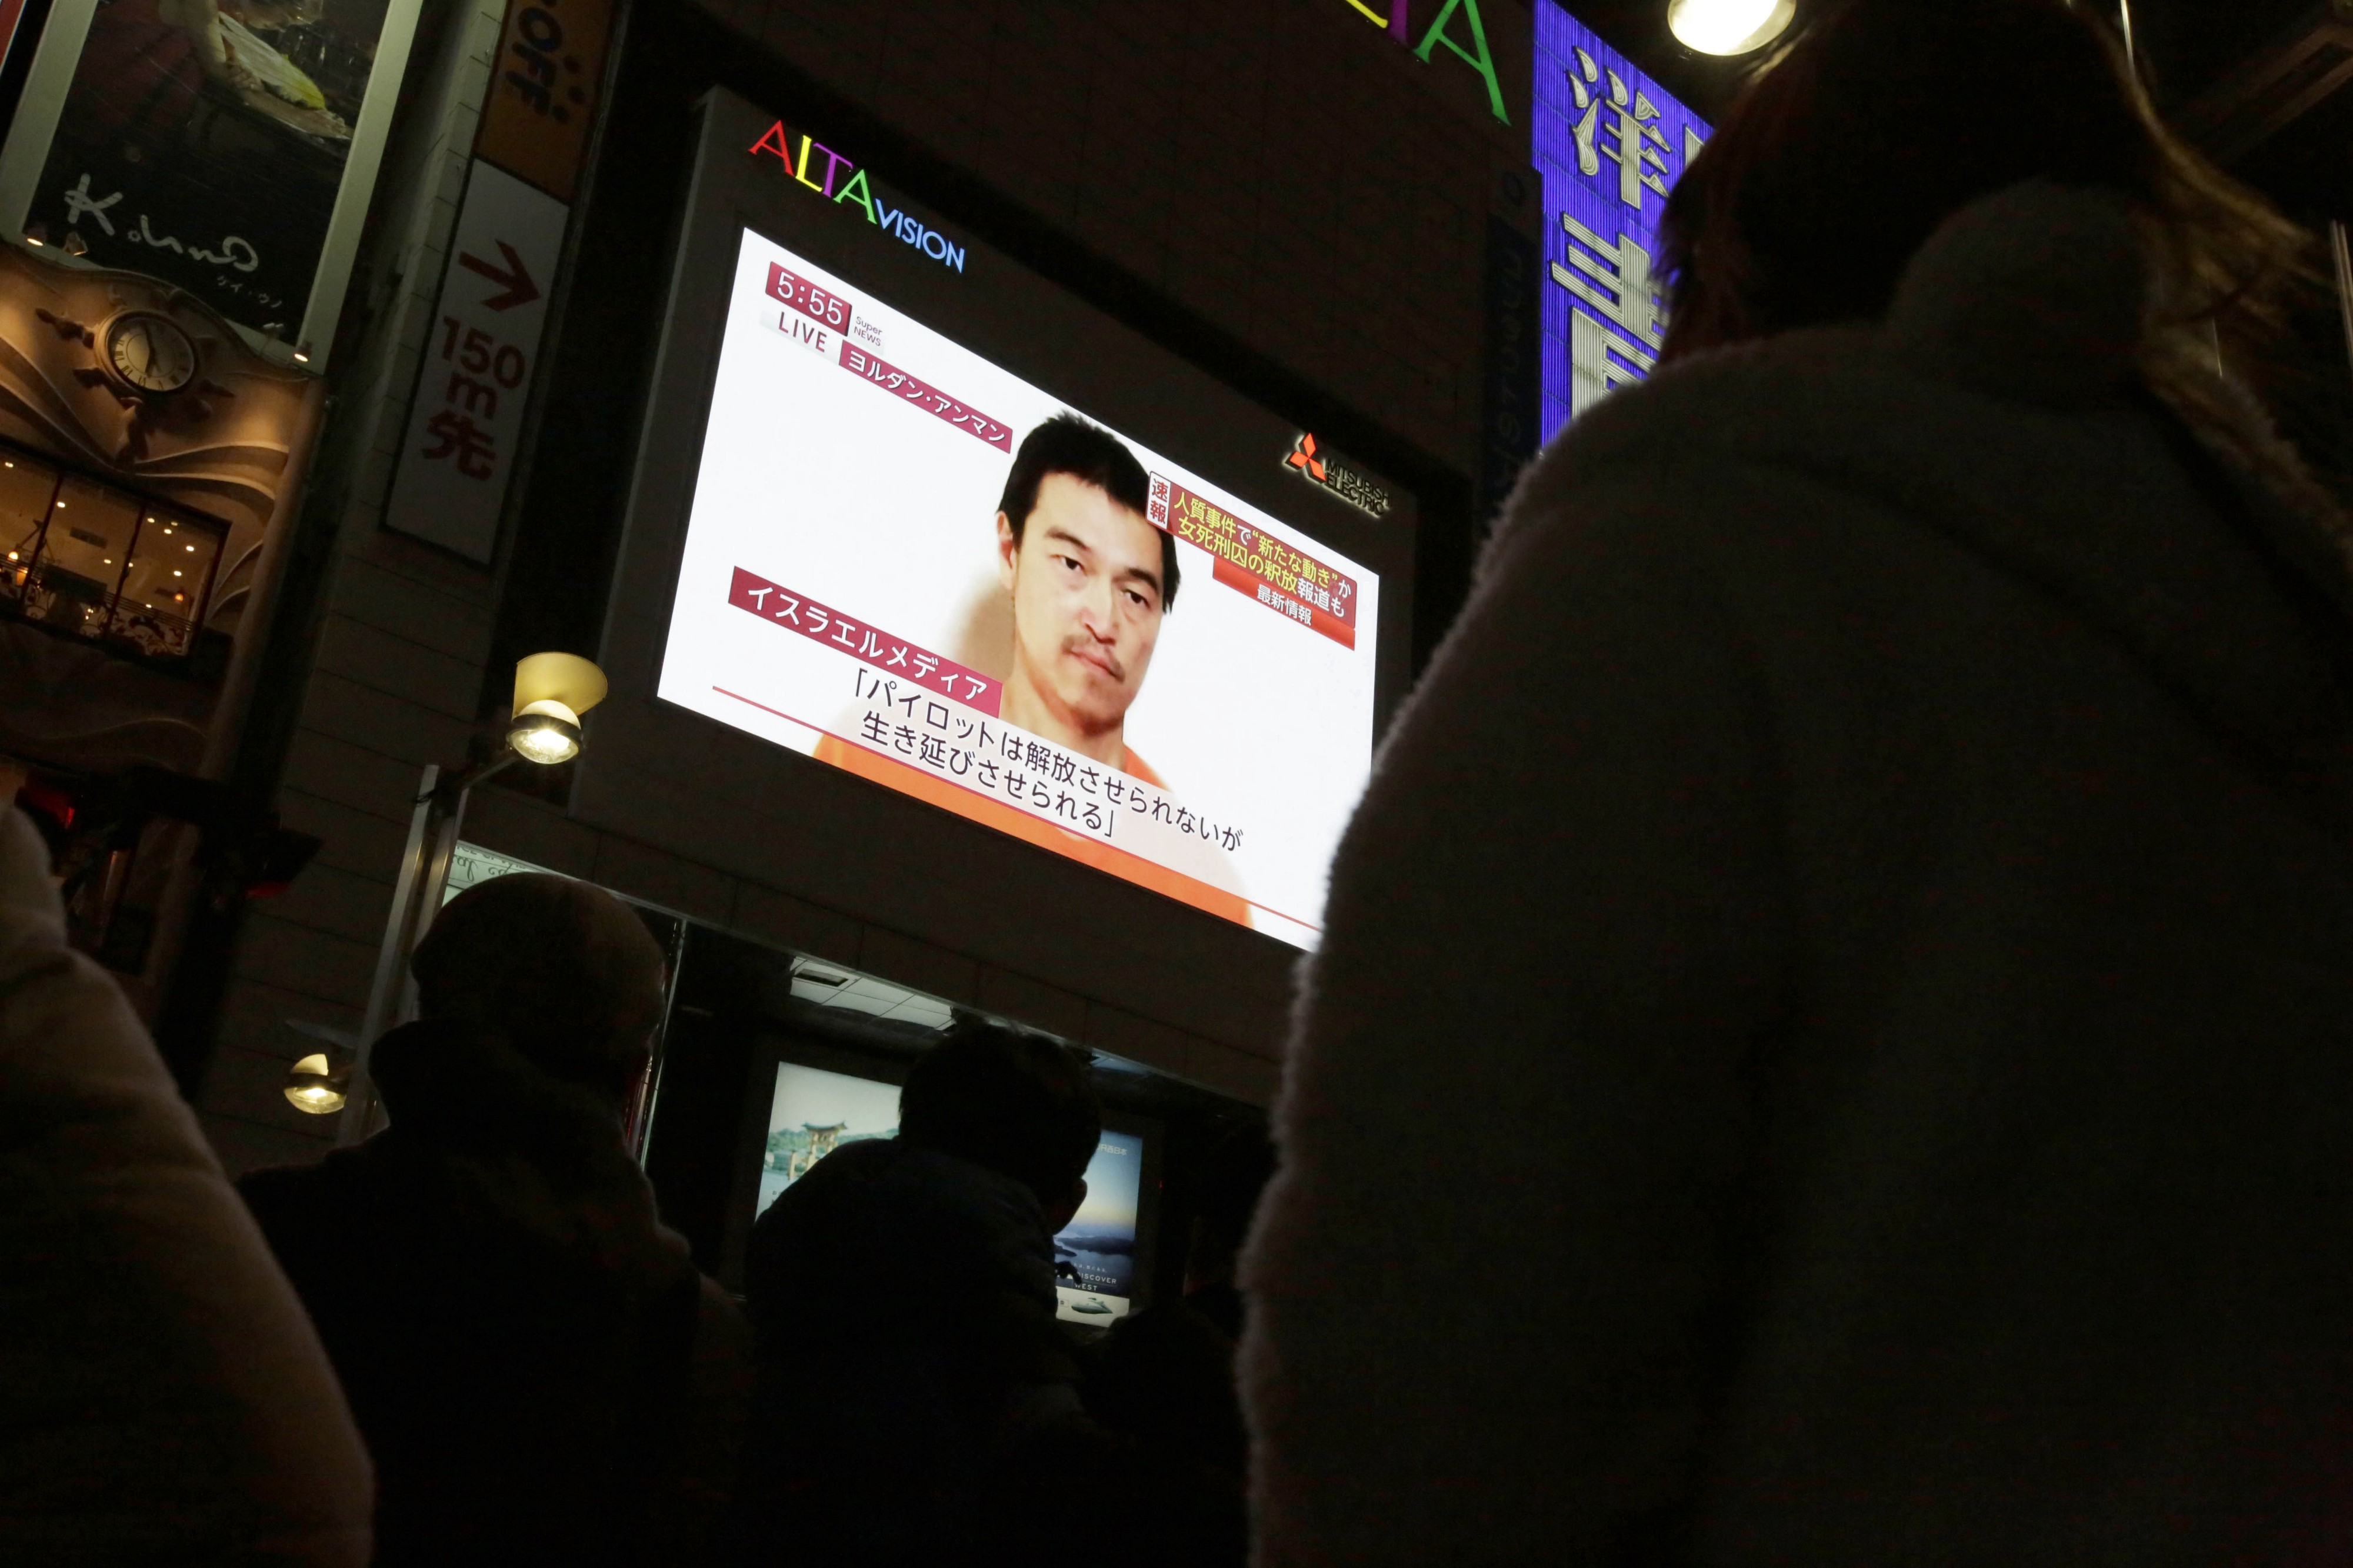 Jordan and Japan Both Lost Citizens to Islamic State